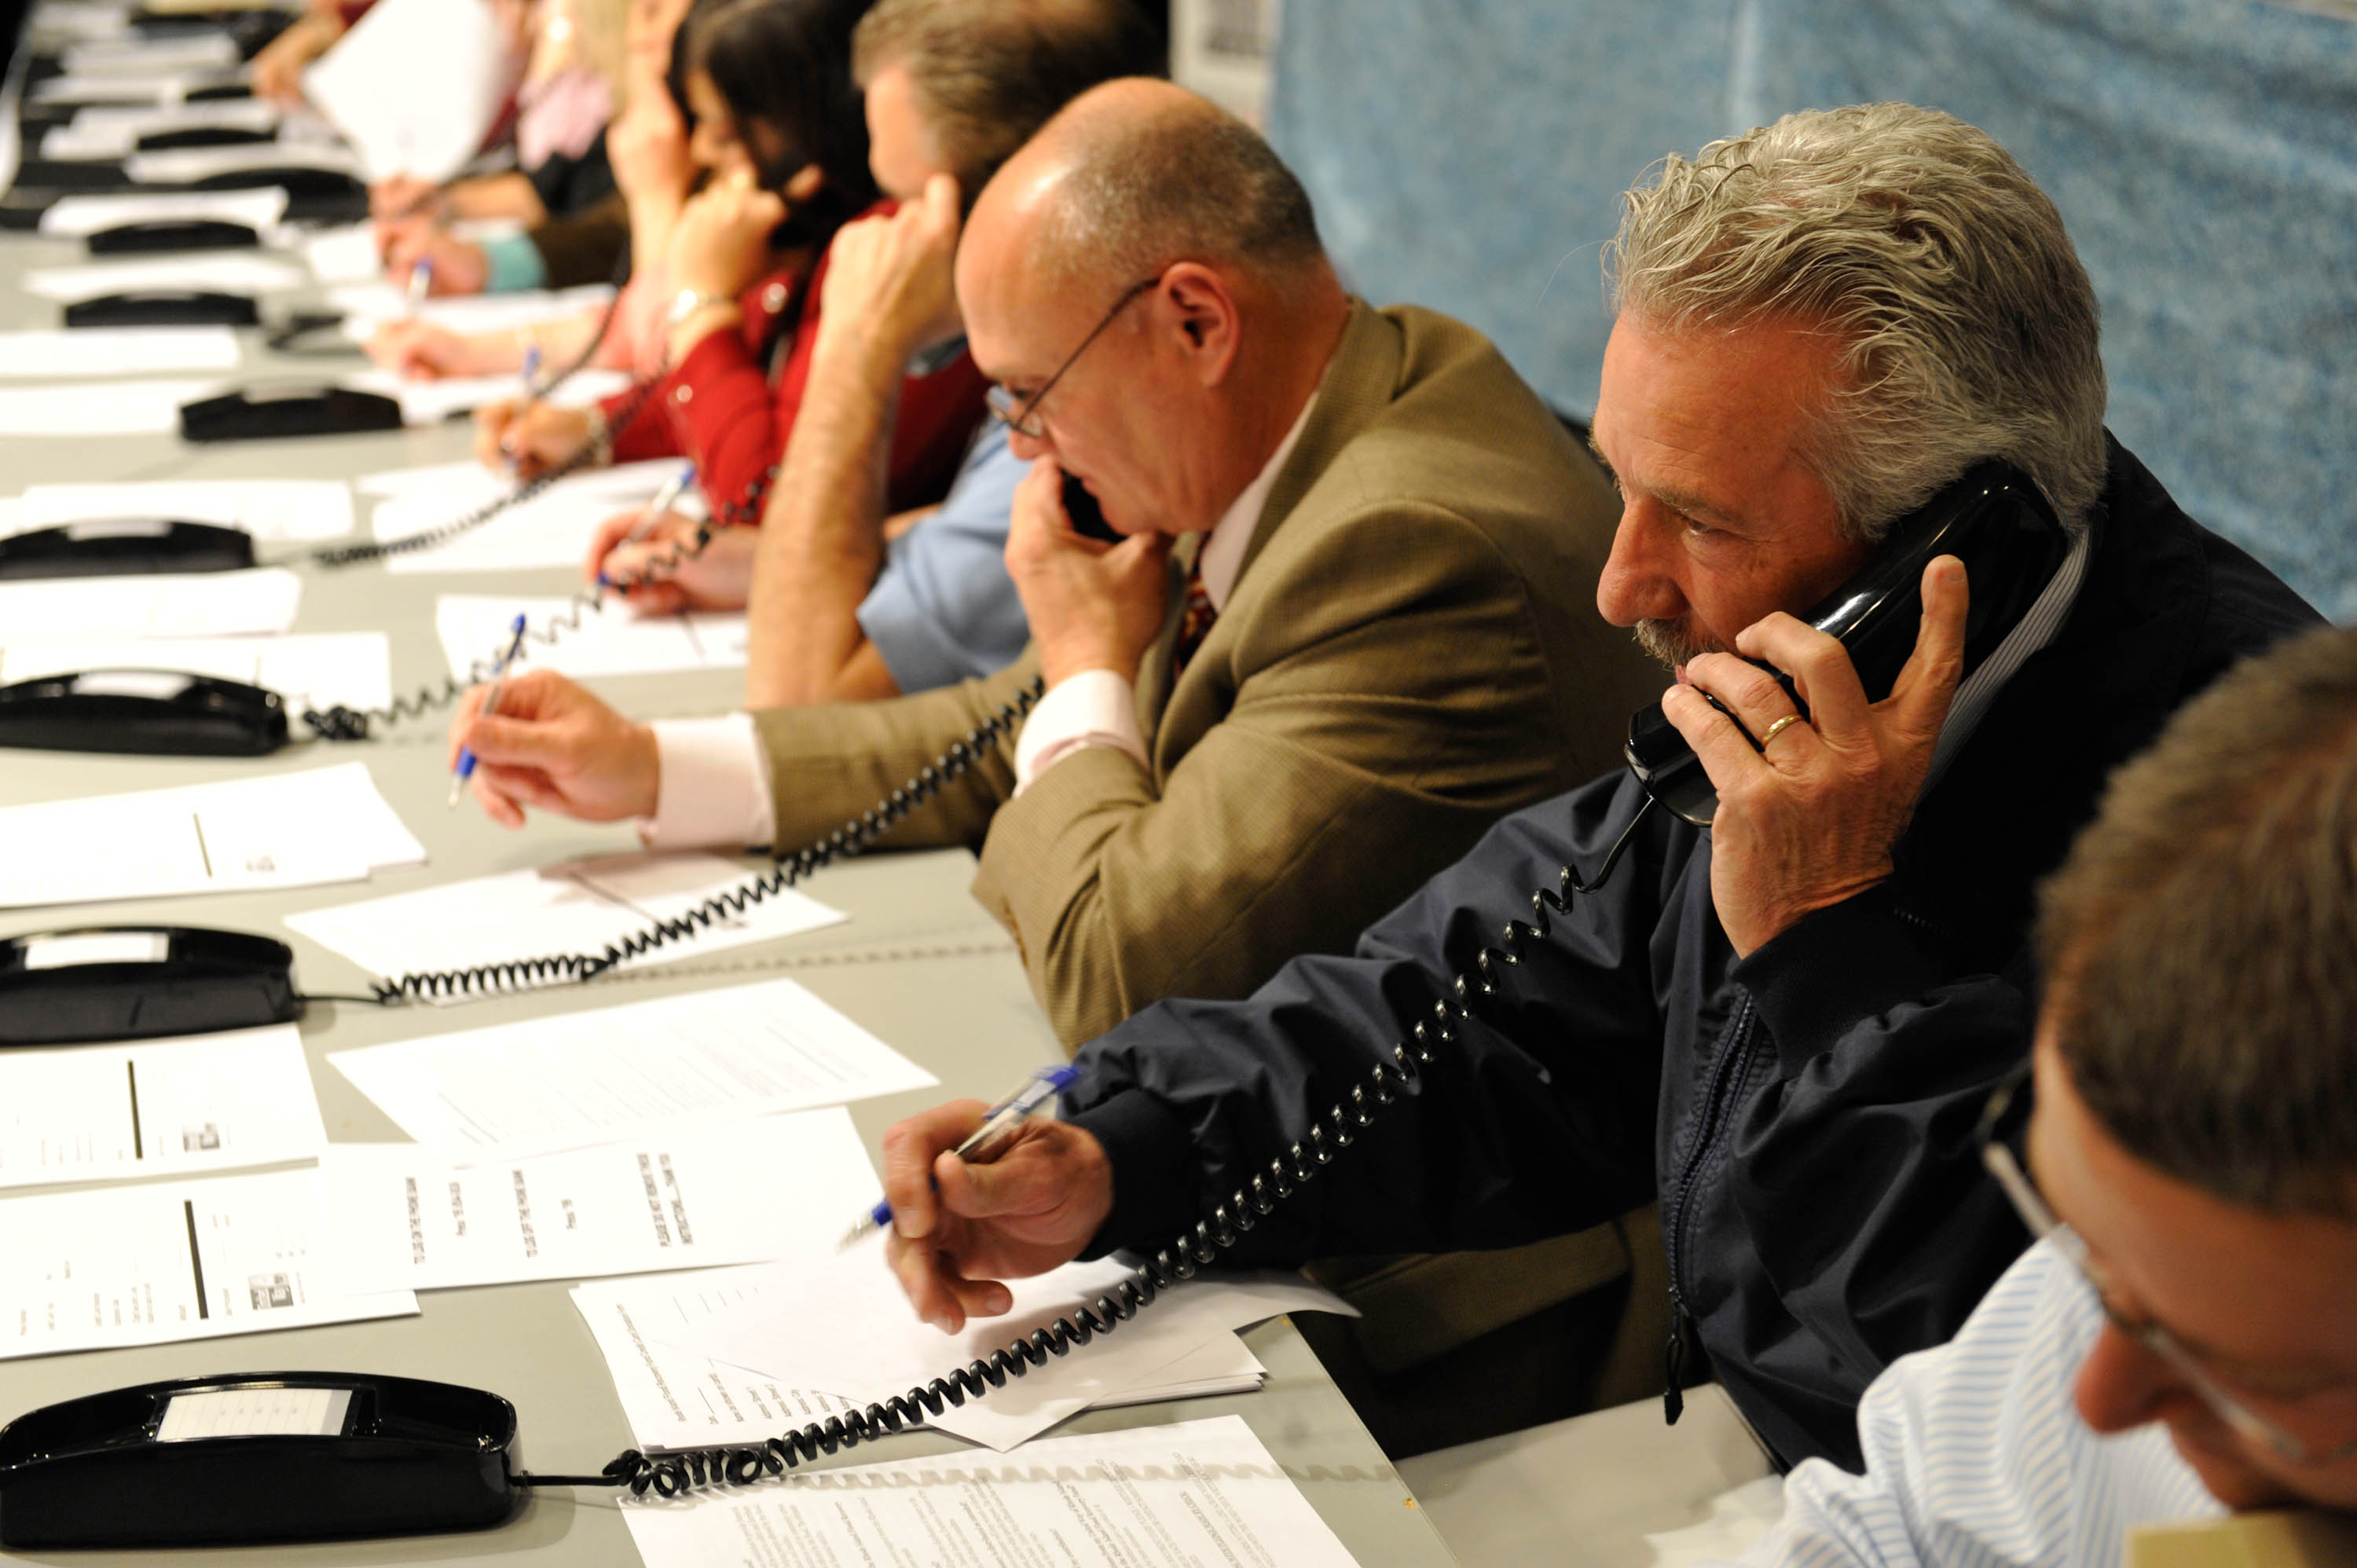 Confessions of a Telethon Caller